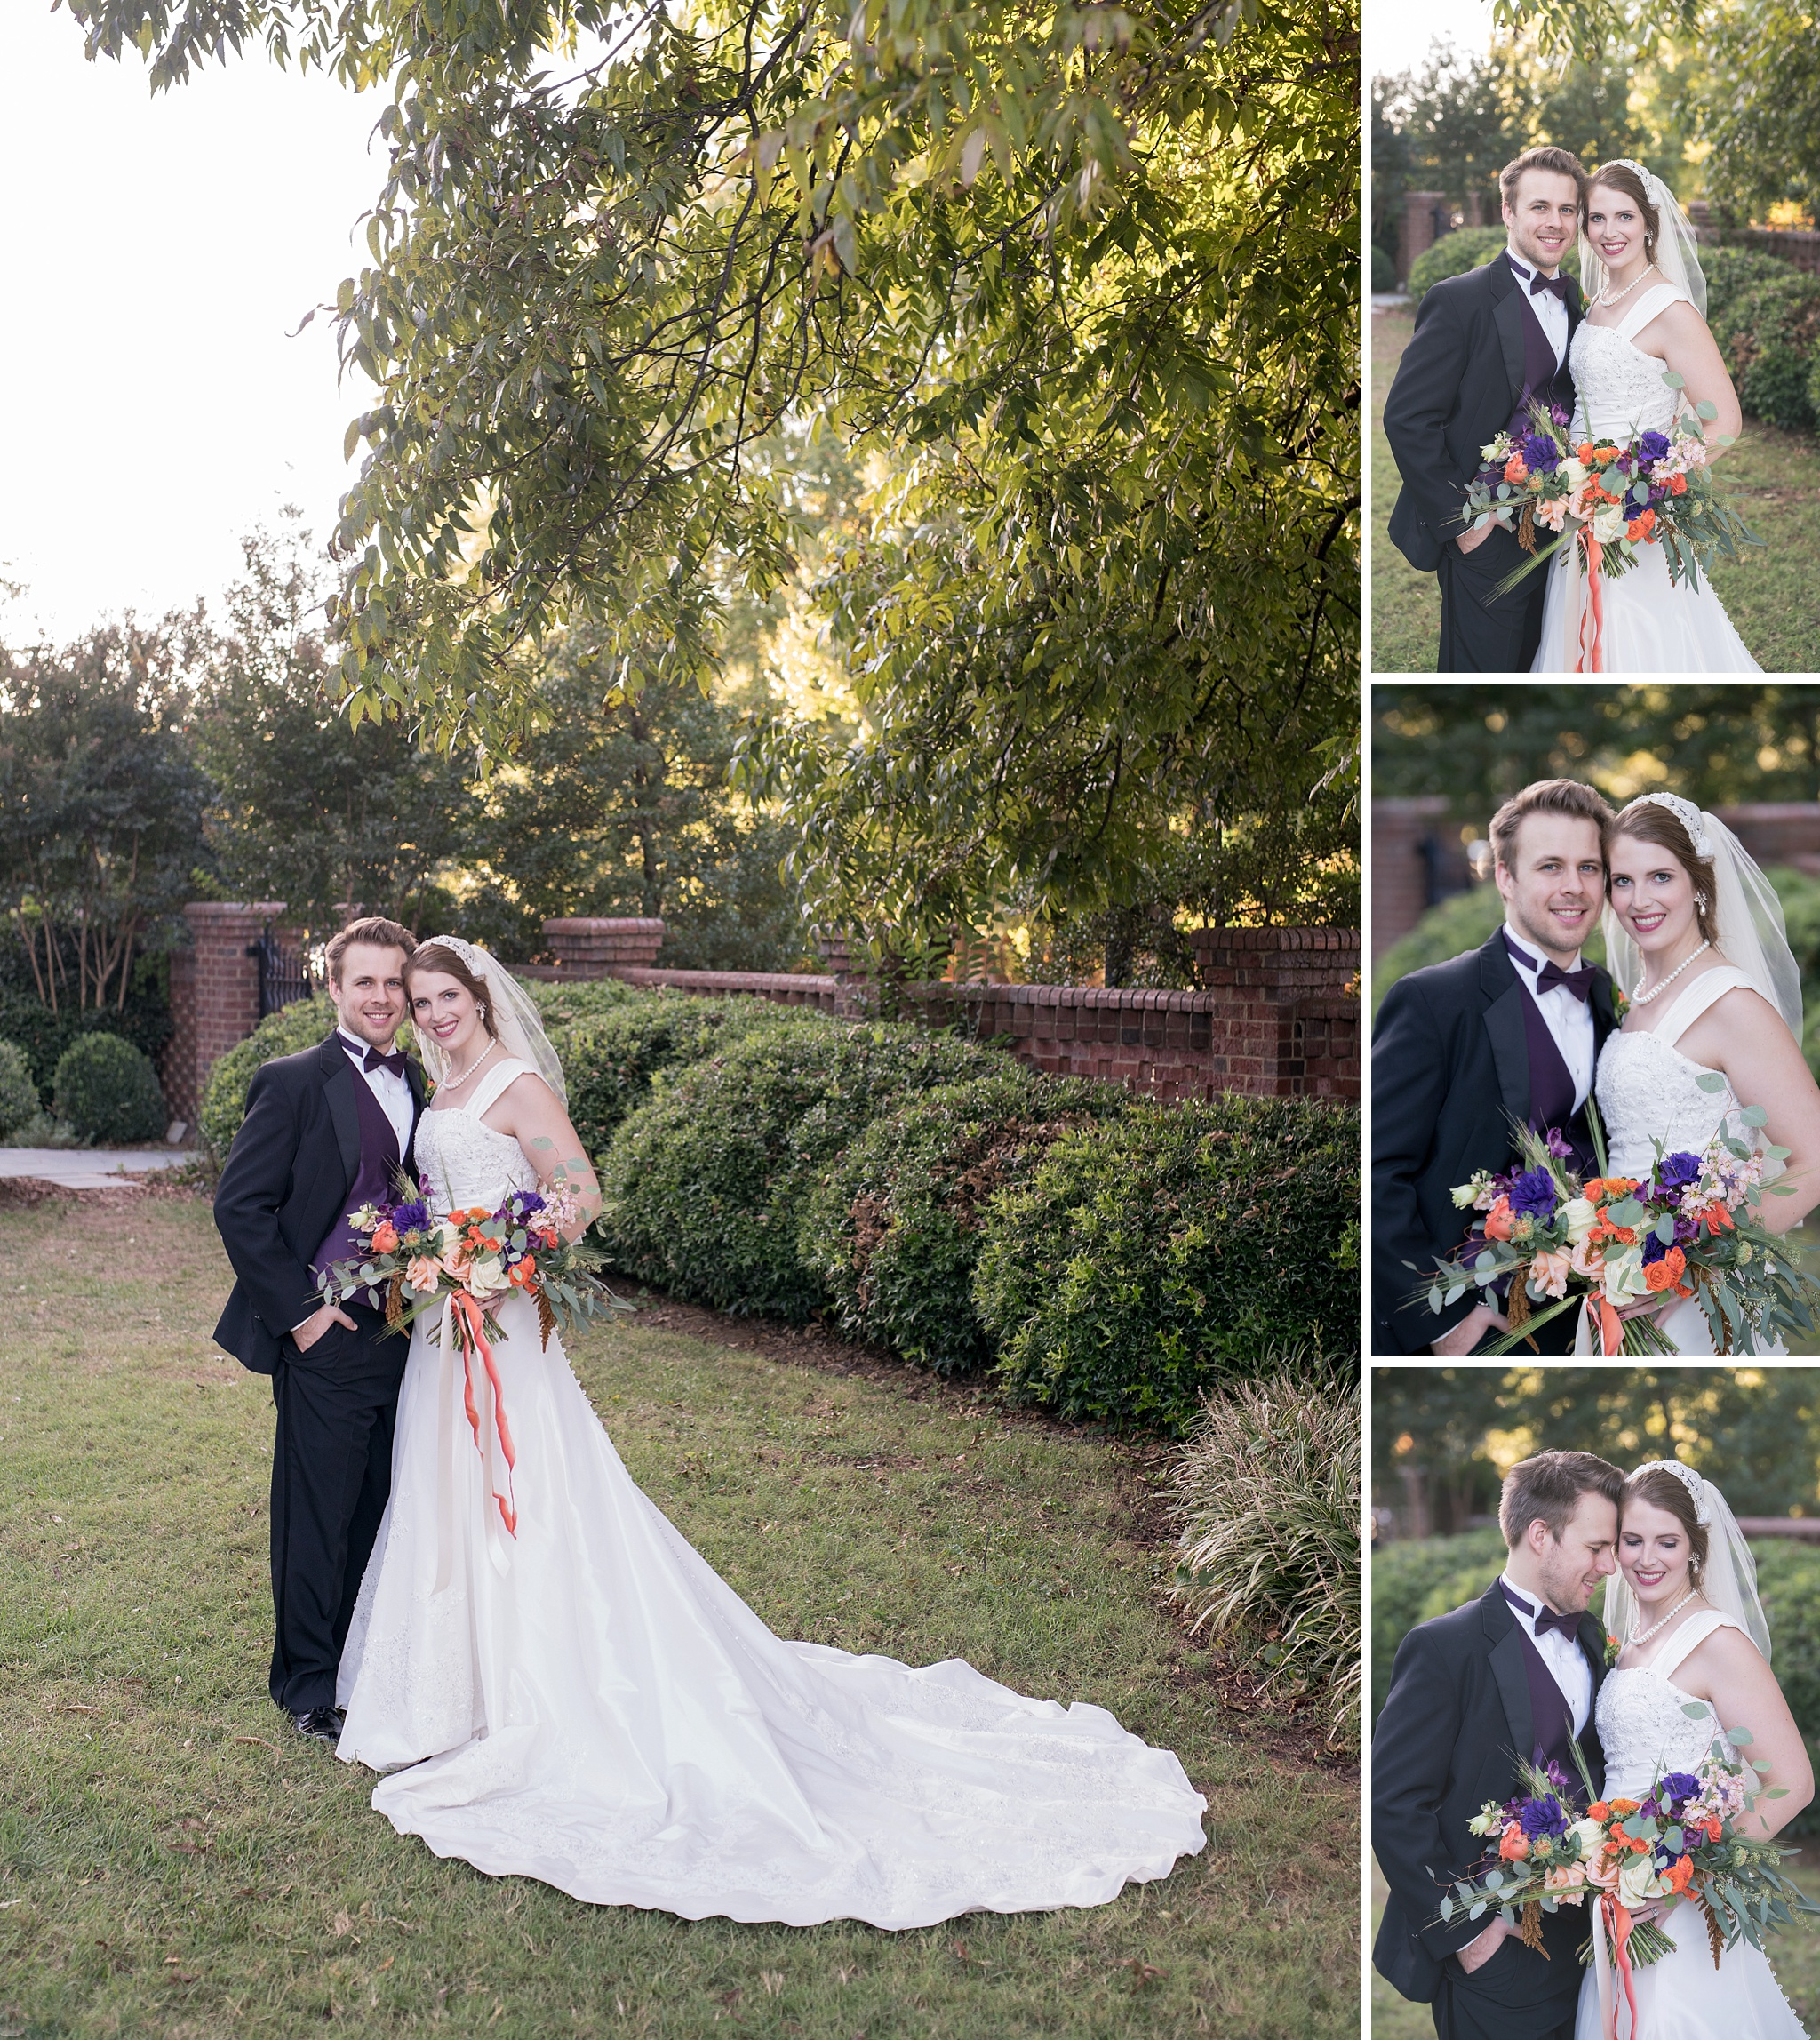 Matthews-House-Wedding-Photographer-Cary-NC-126.jpg